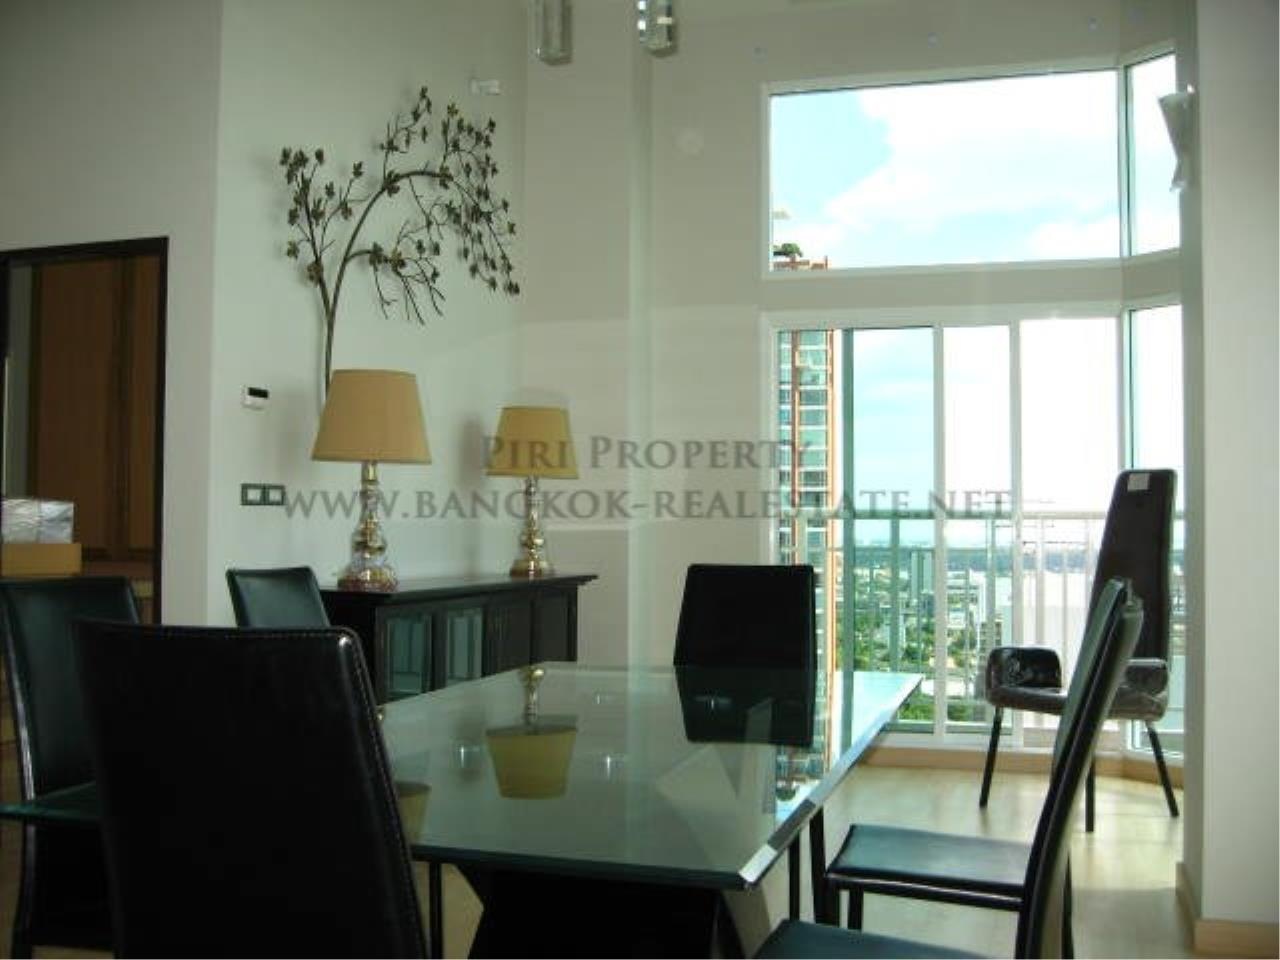 Piri Property Agency's 59 Heritage Penthouse - 3 bedroom Duplex for Rent 2